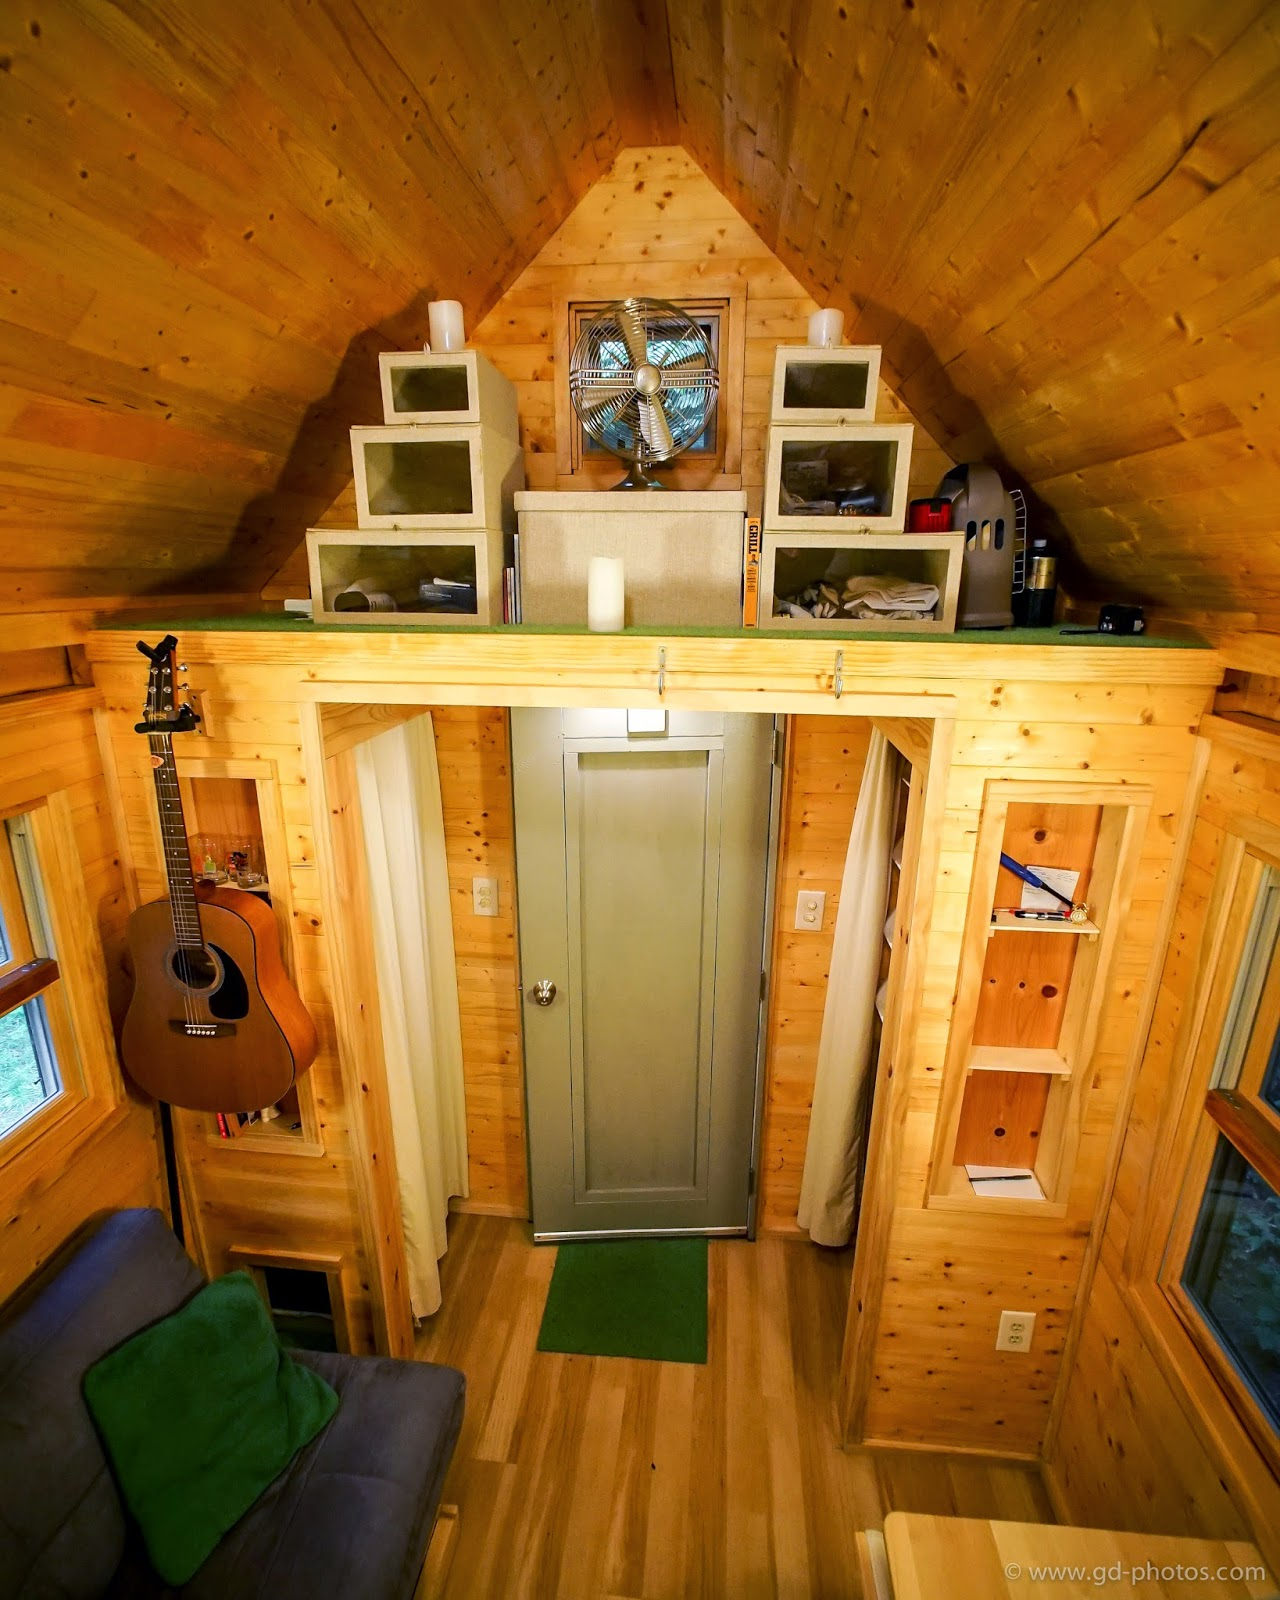 Square Foot House: Tiny House Giant Journey's Trip To 120 Squre Feet